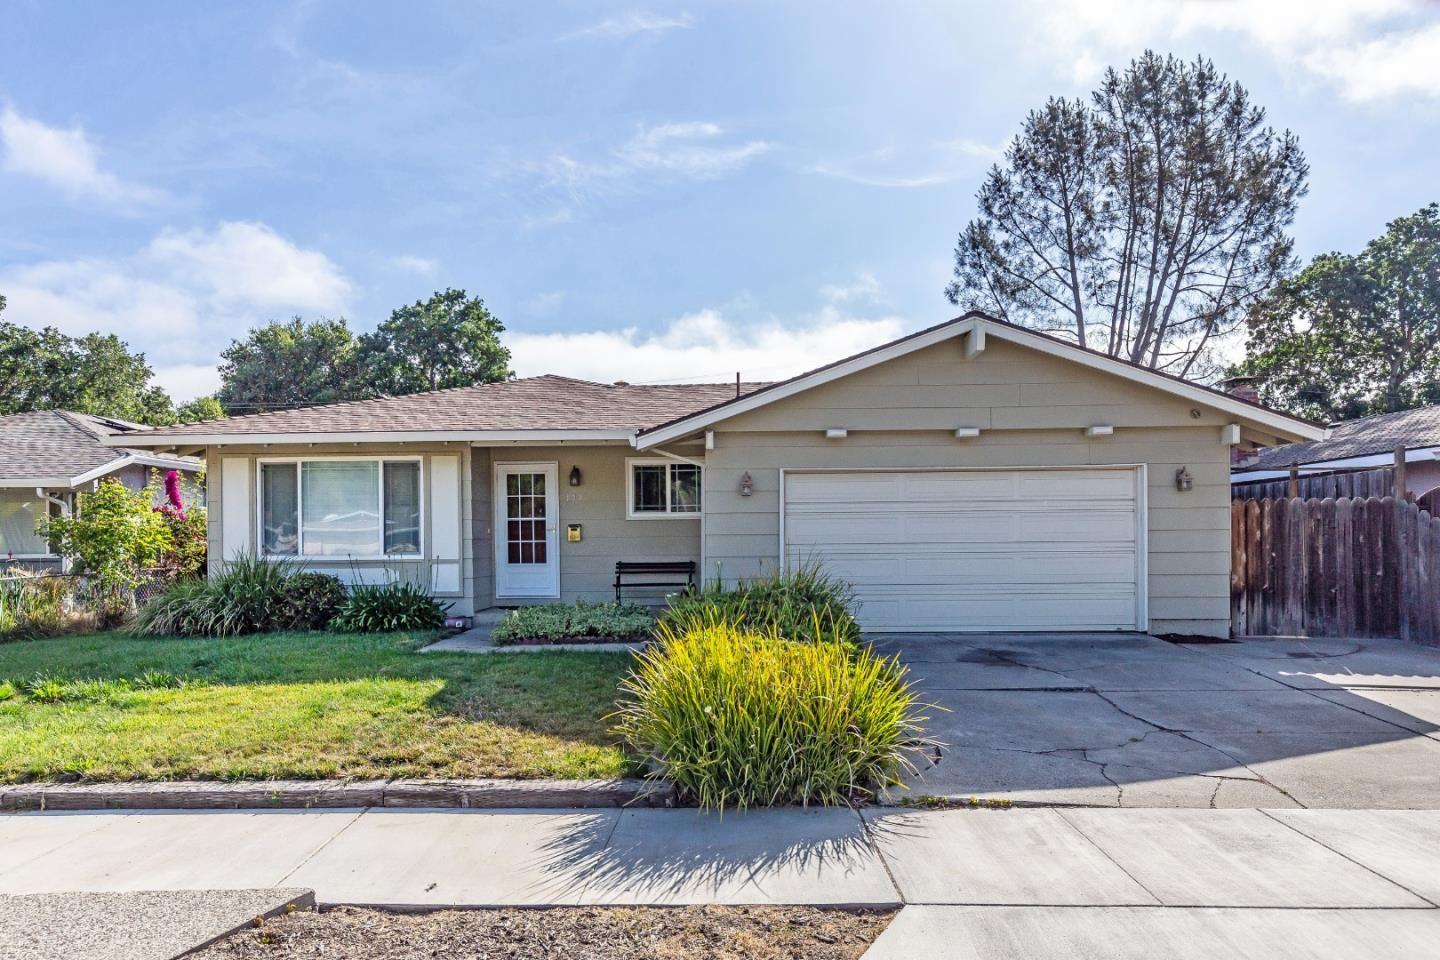 Photo for 101 Manor Court, MORGAN HILL, CA 95037 (MLS # ML81847537)